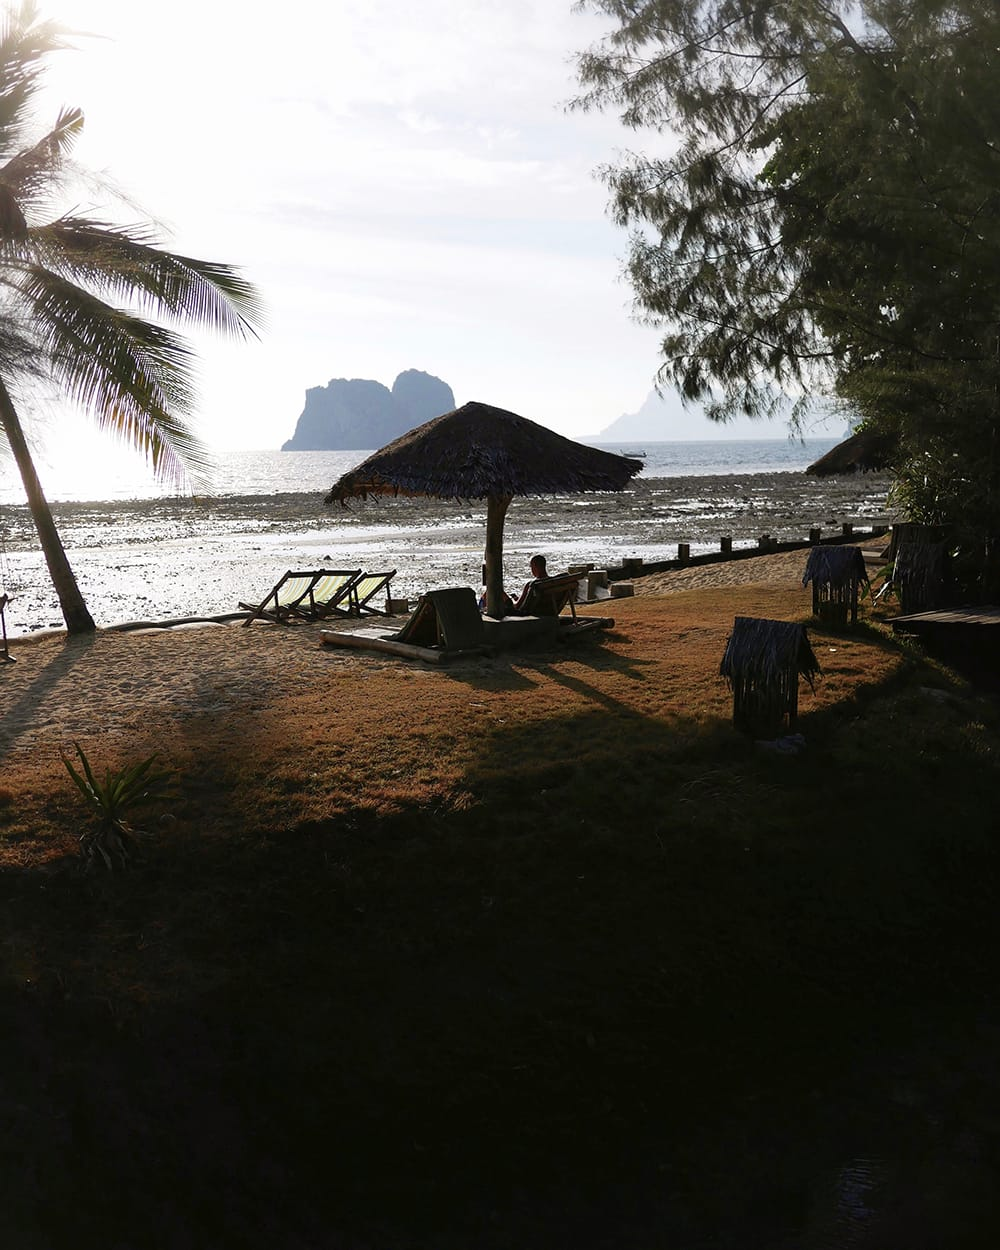 A man laying on a beach, under an umbrella during sunset. Koh Ngai